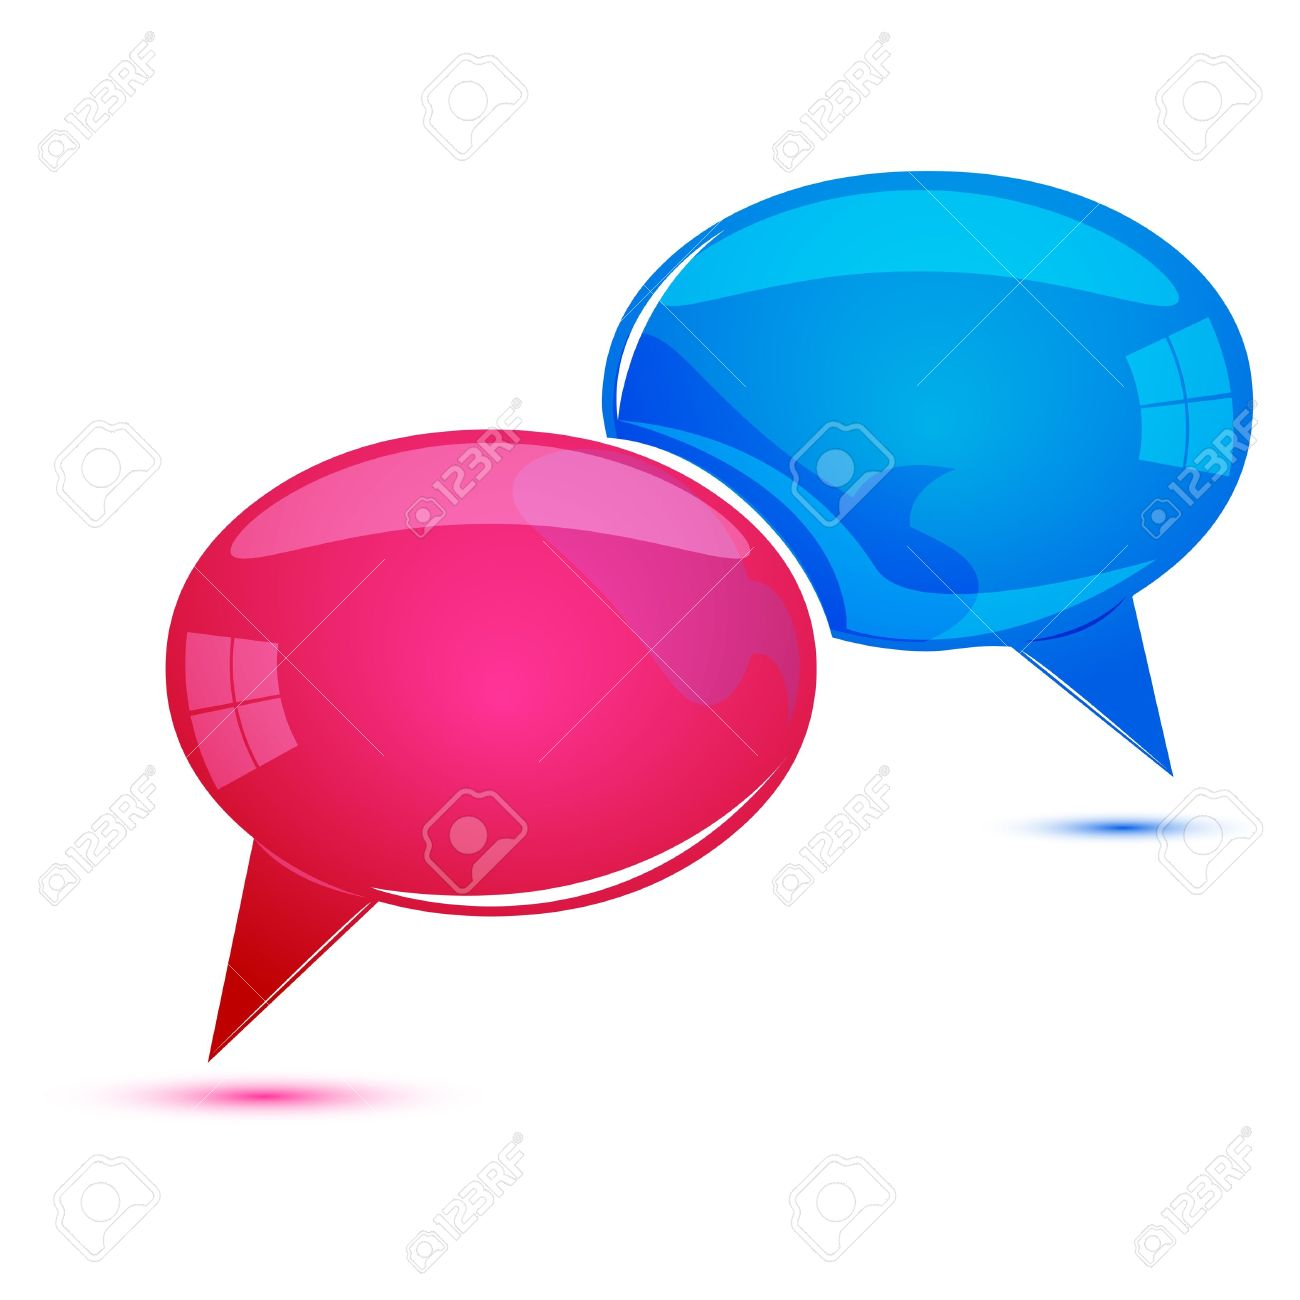 illustration of dialogue bubbles on white background - 9269527